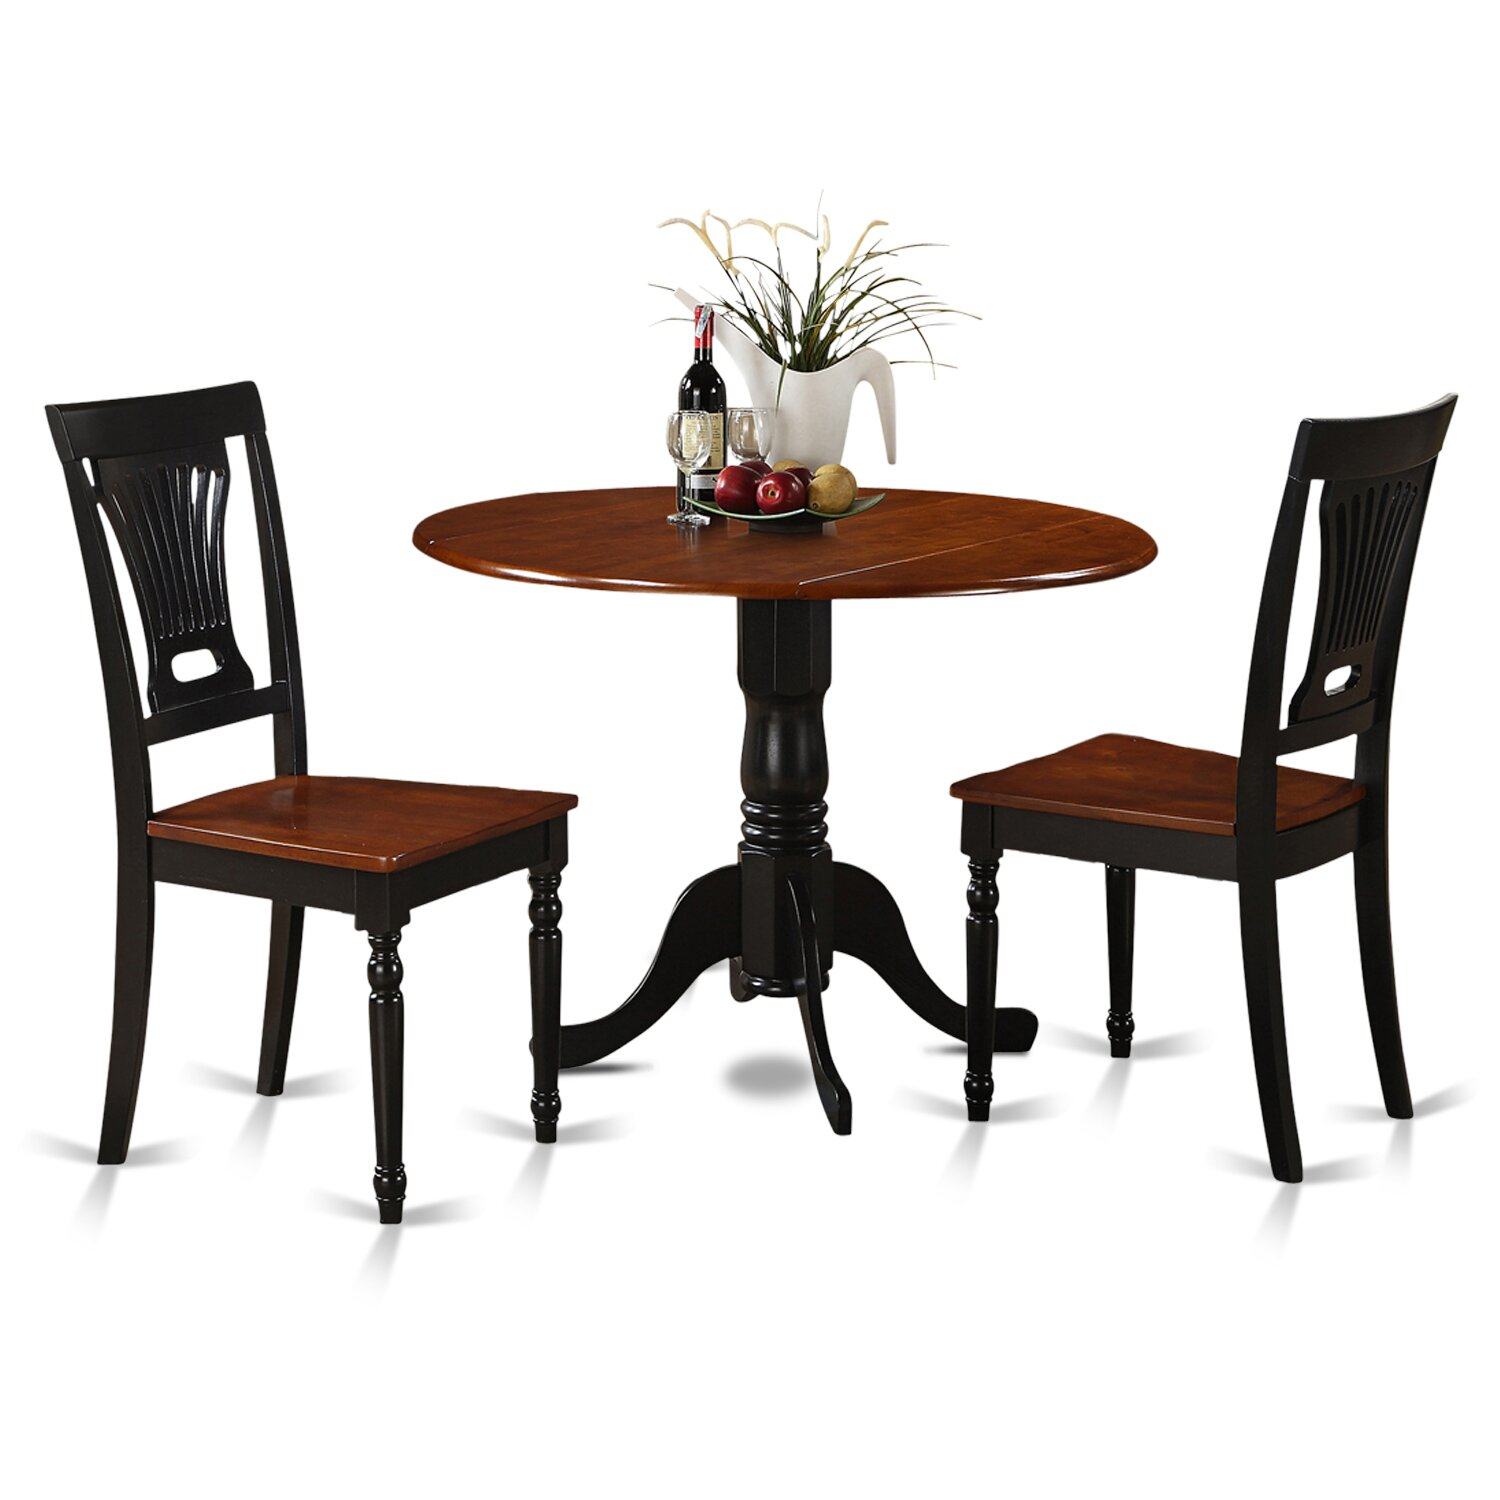 Wooden importers dublin 3 piece dining set reviews wayfair for Kitchenette sets furniture